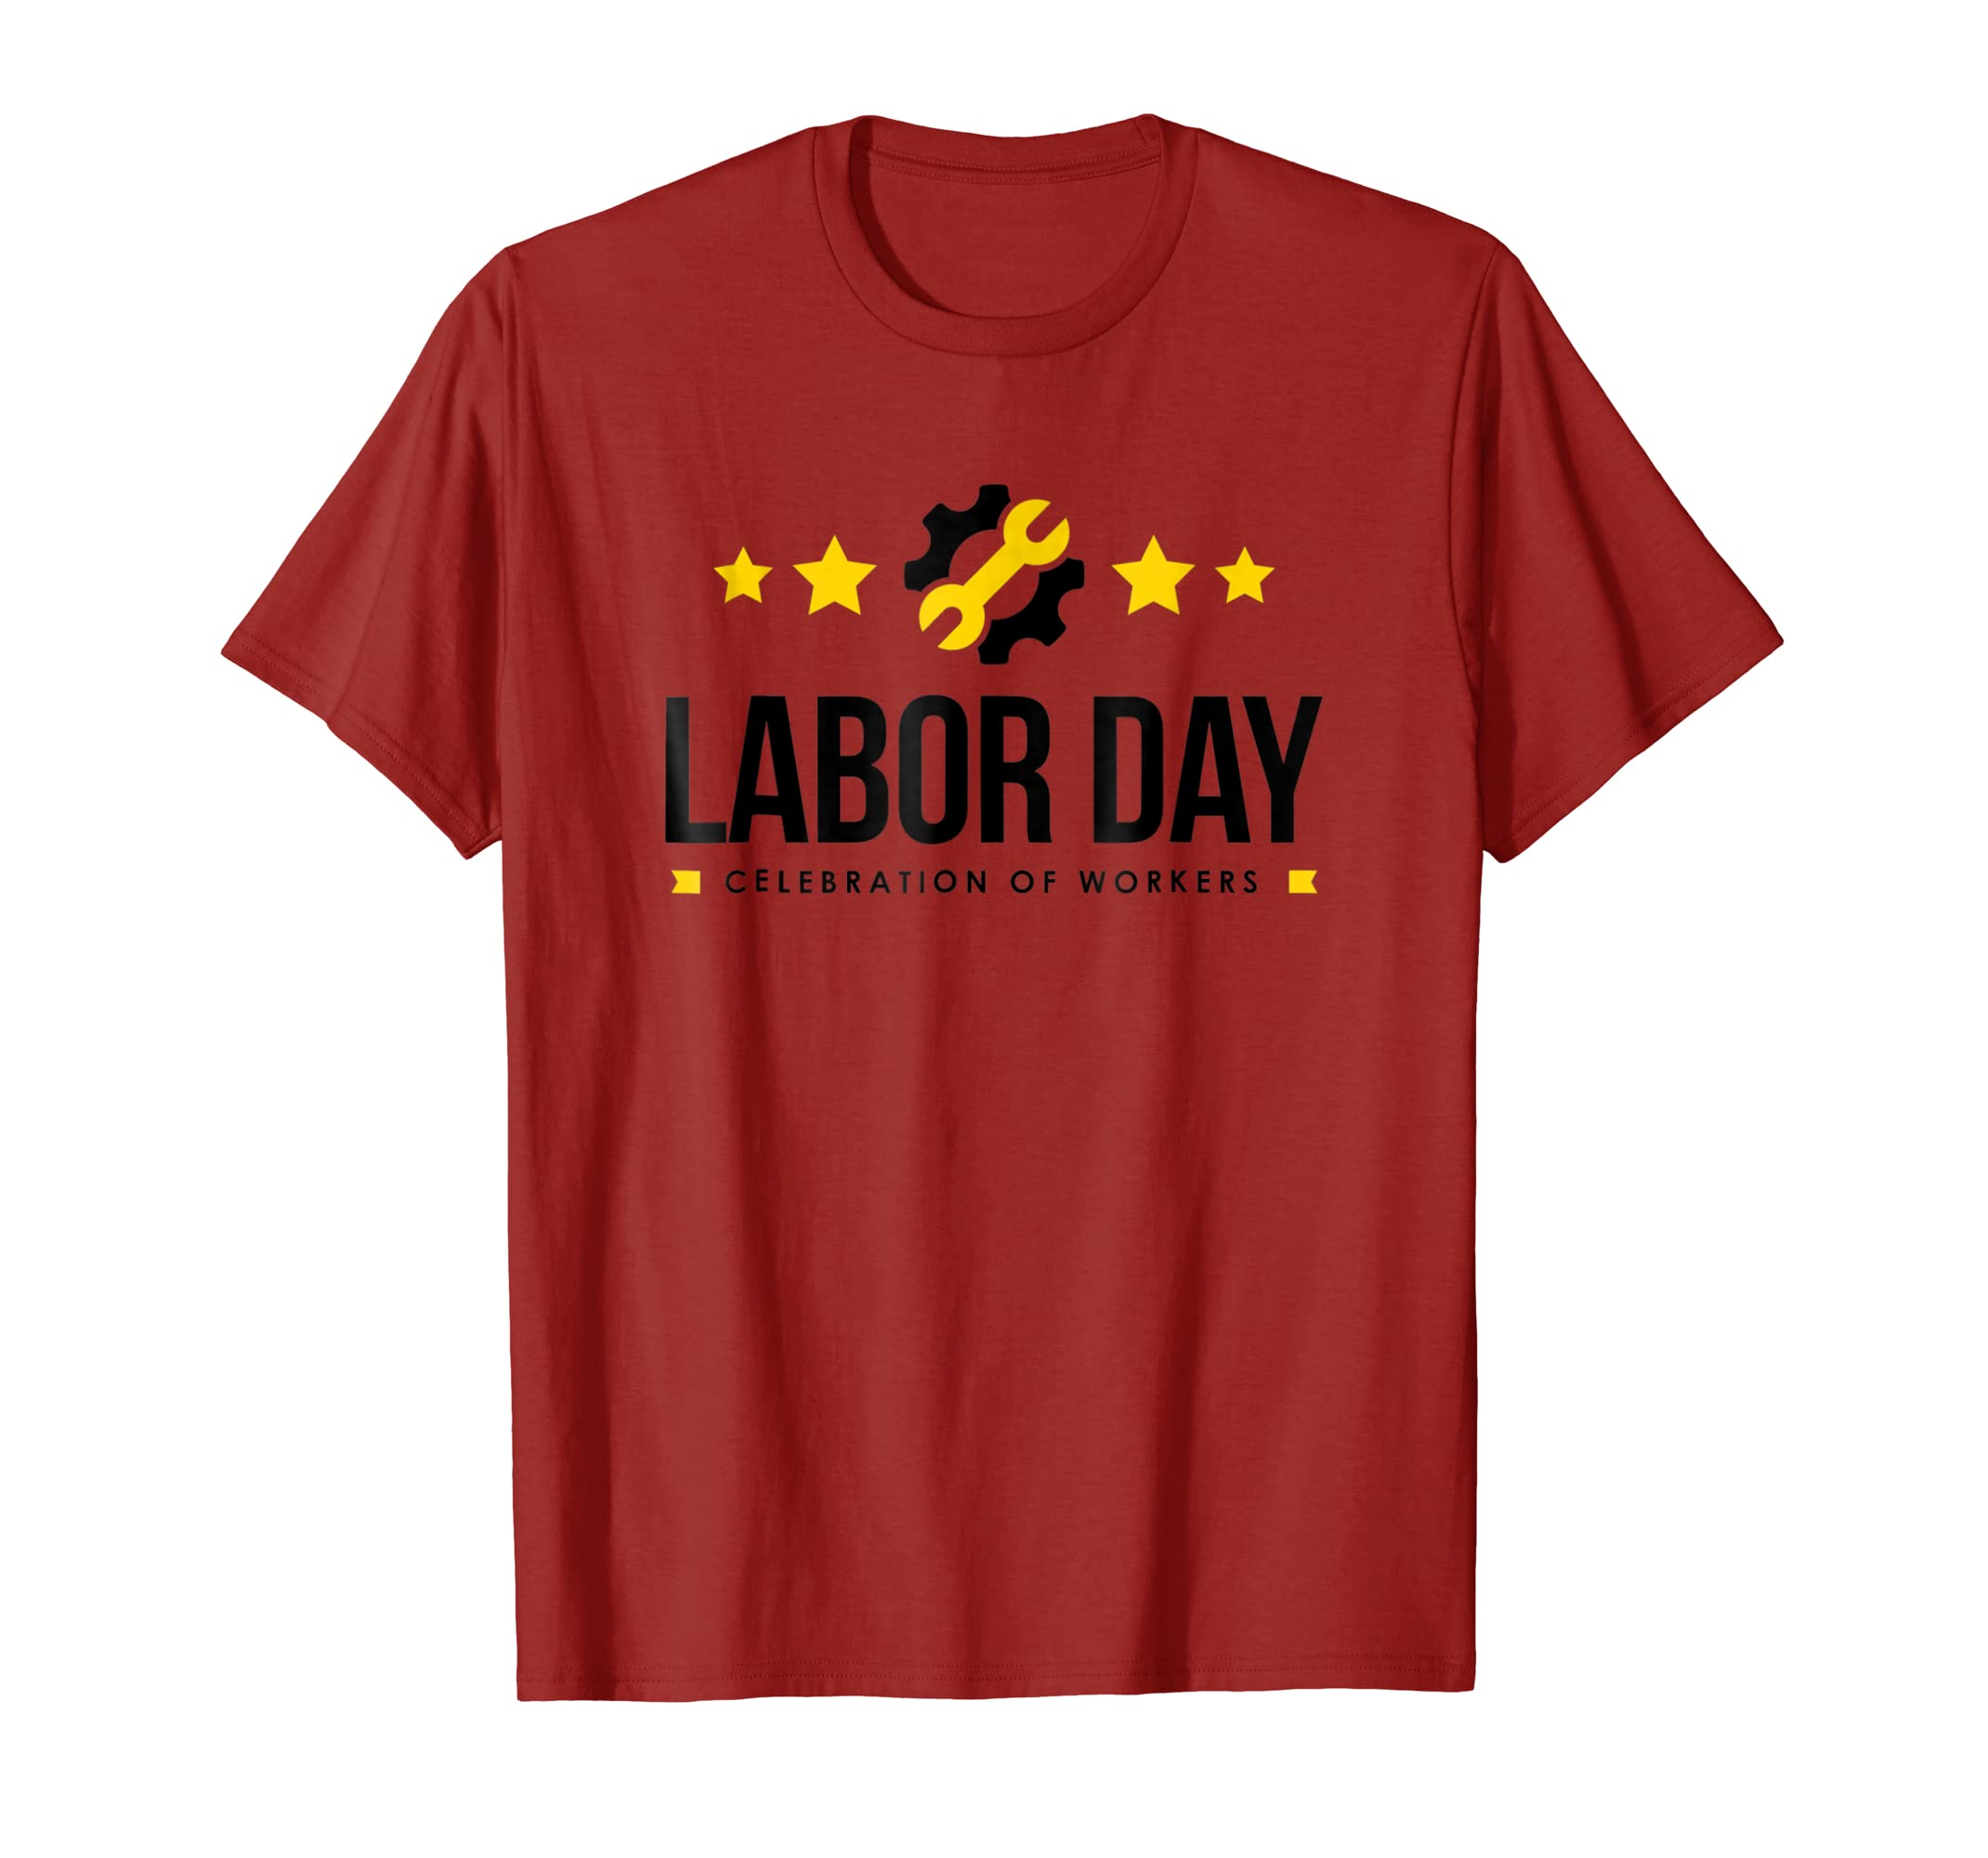 Labor Day T-Shirt, Celebration of Workers Shirt, Labor Gift-anz